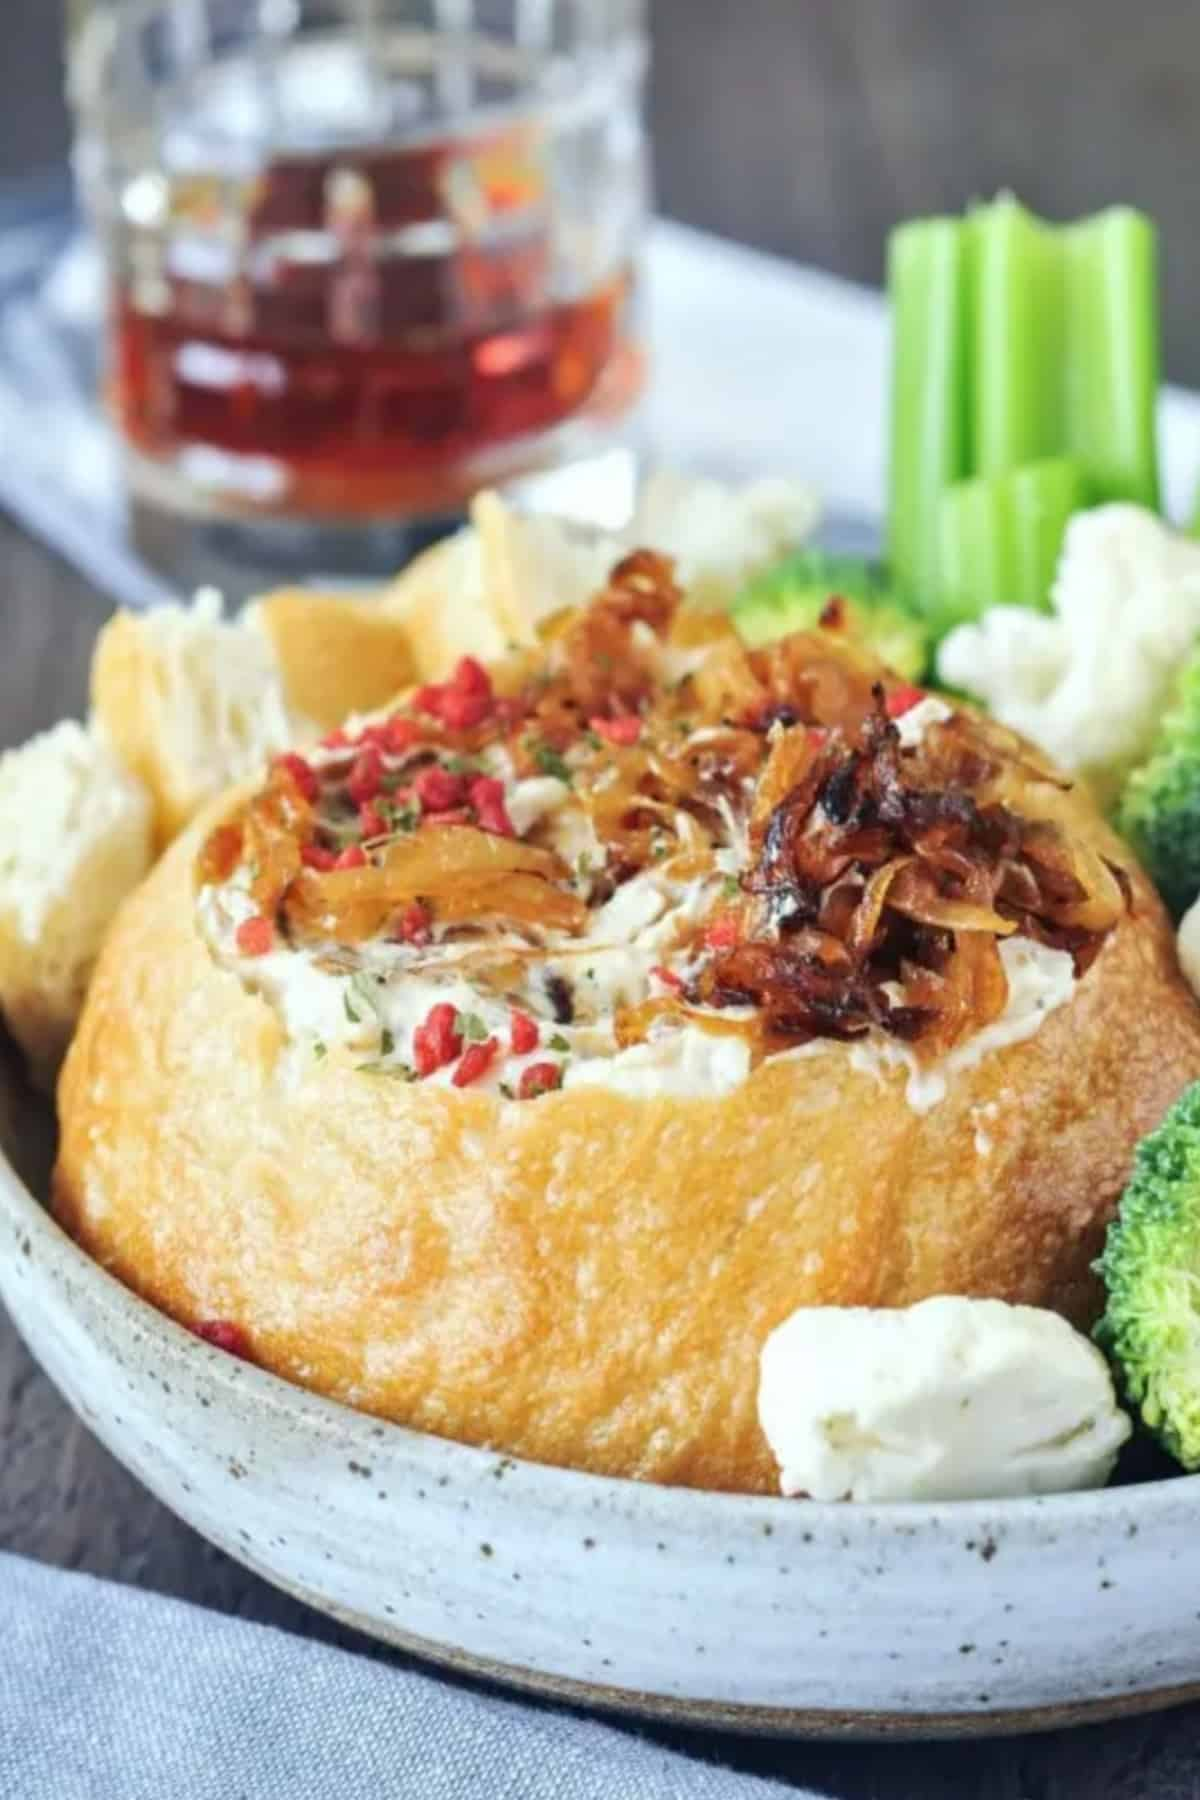 Caramelized onion dip in a bread bowl